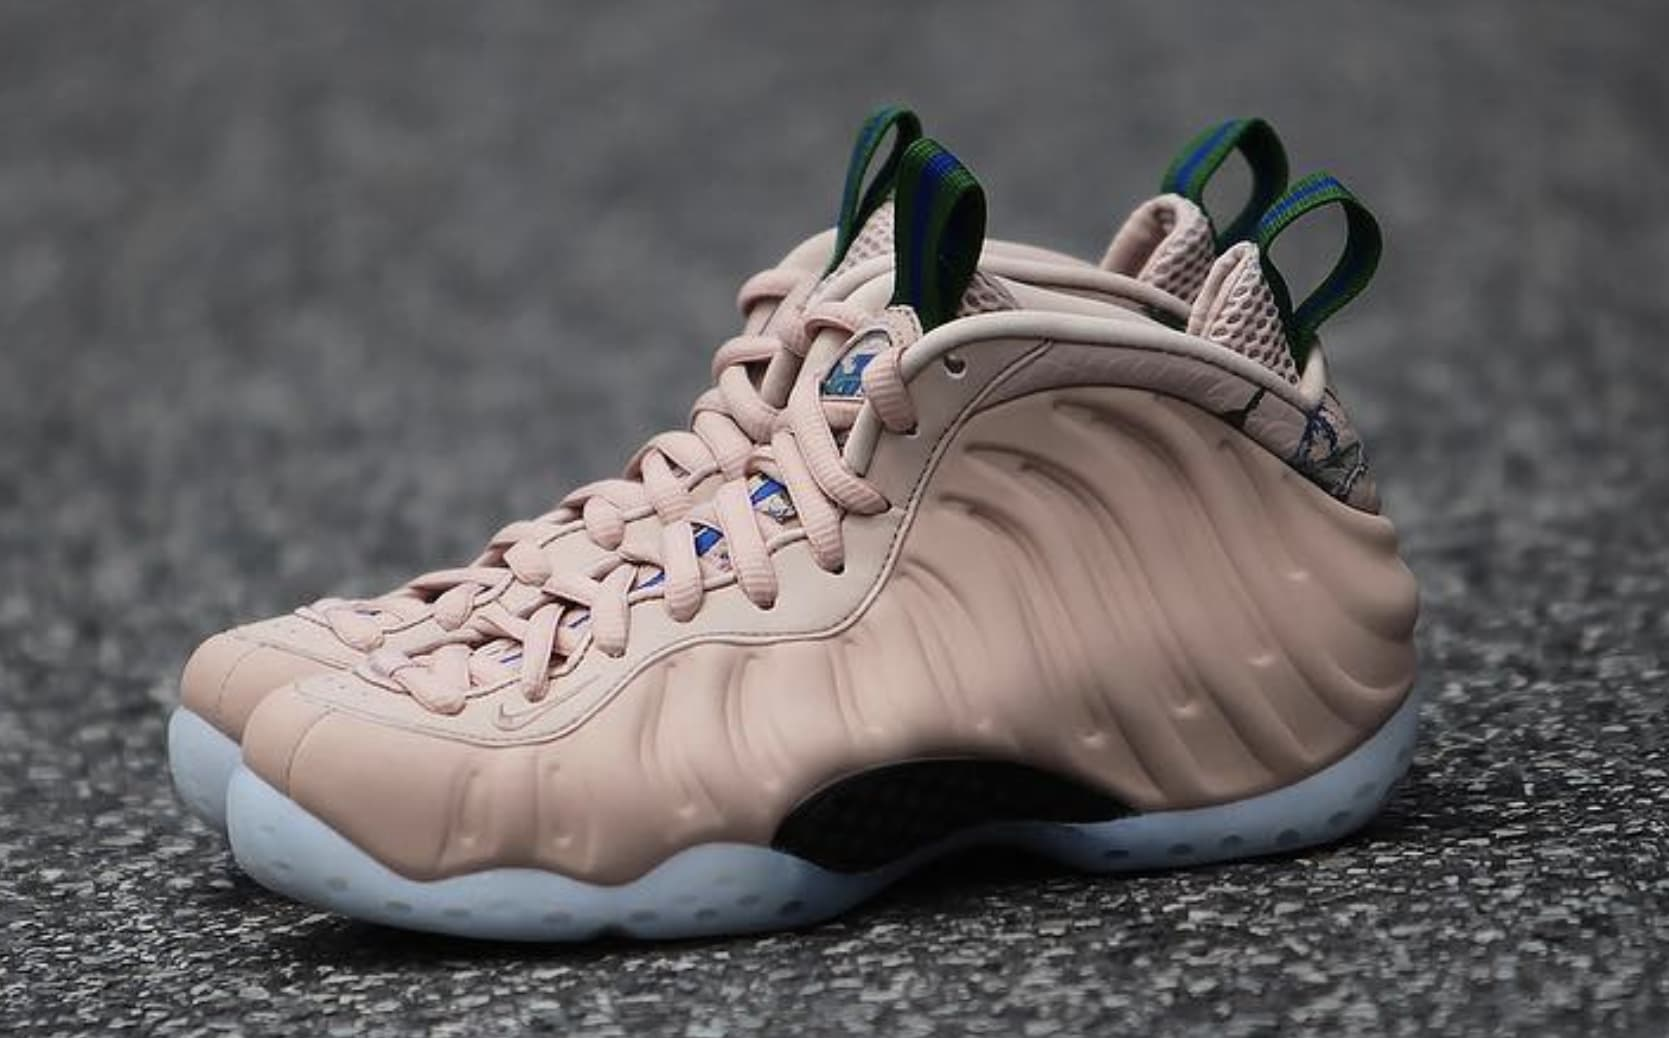 WMNS Nike Air Foamposite One 'Particle Beige' AA3693-200 (Pair)